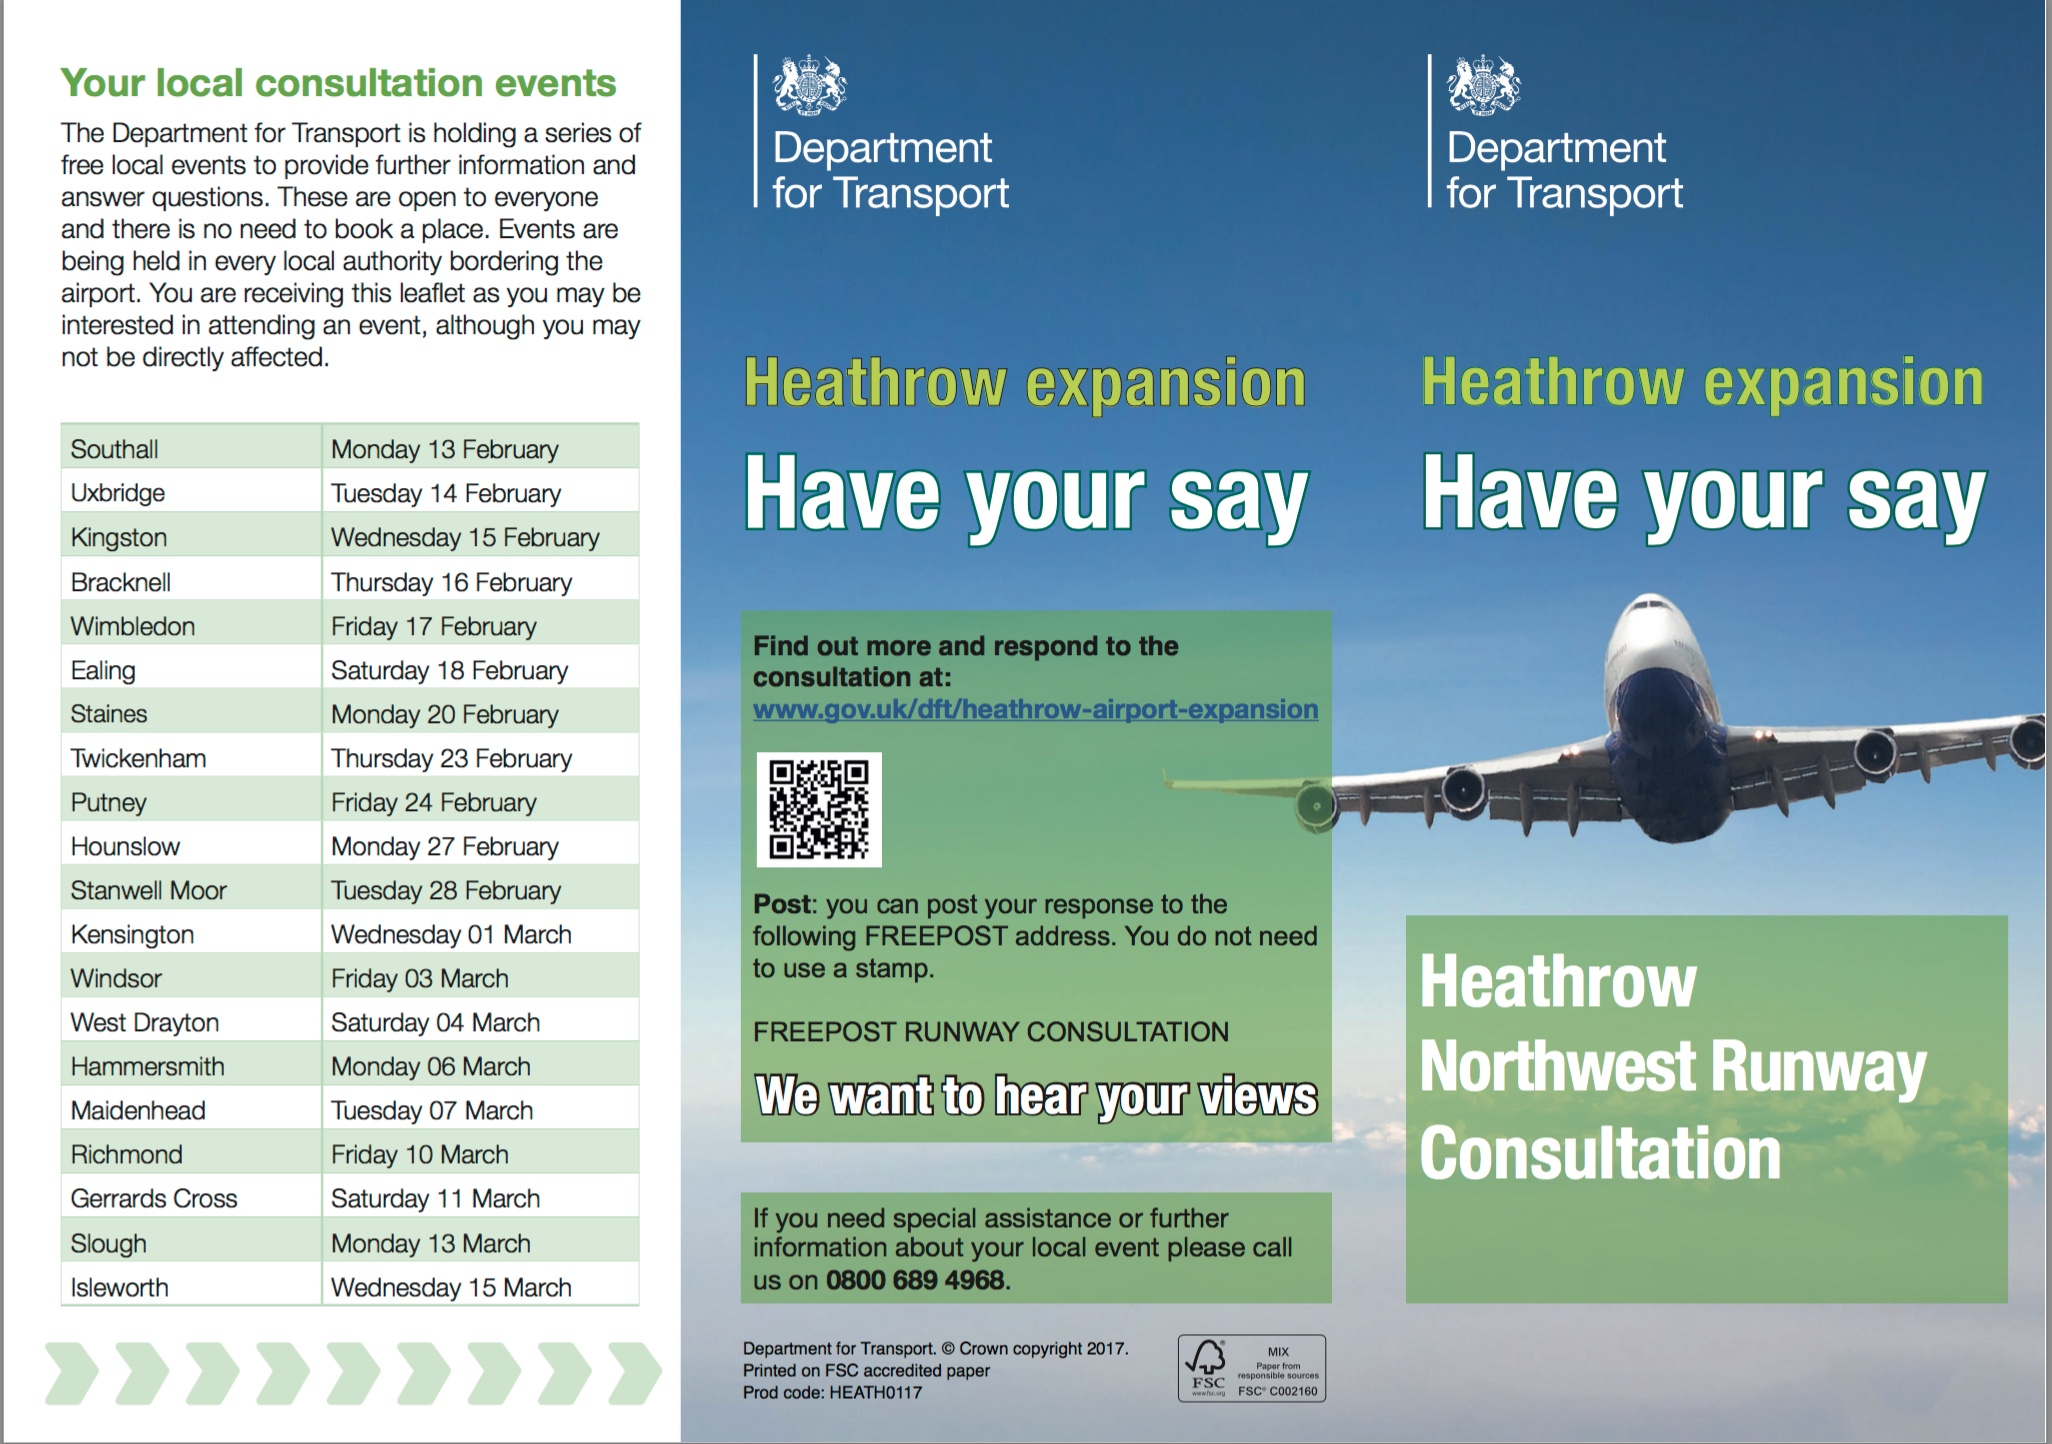 The Consultation leaflet makes people search out information that it could have placed on this leaflet put through 1.5 million letterboxes